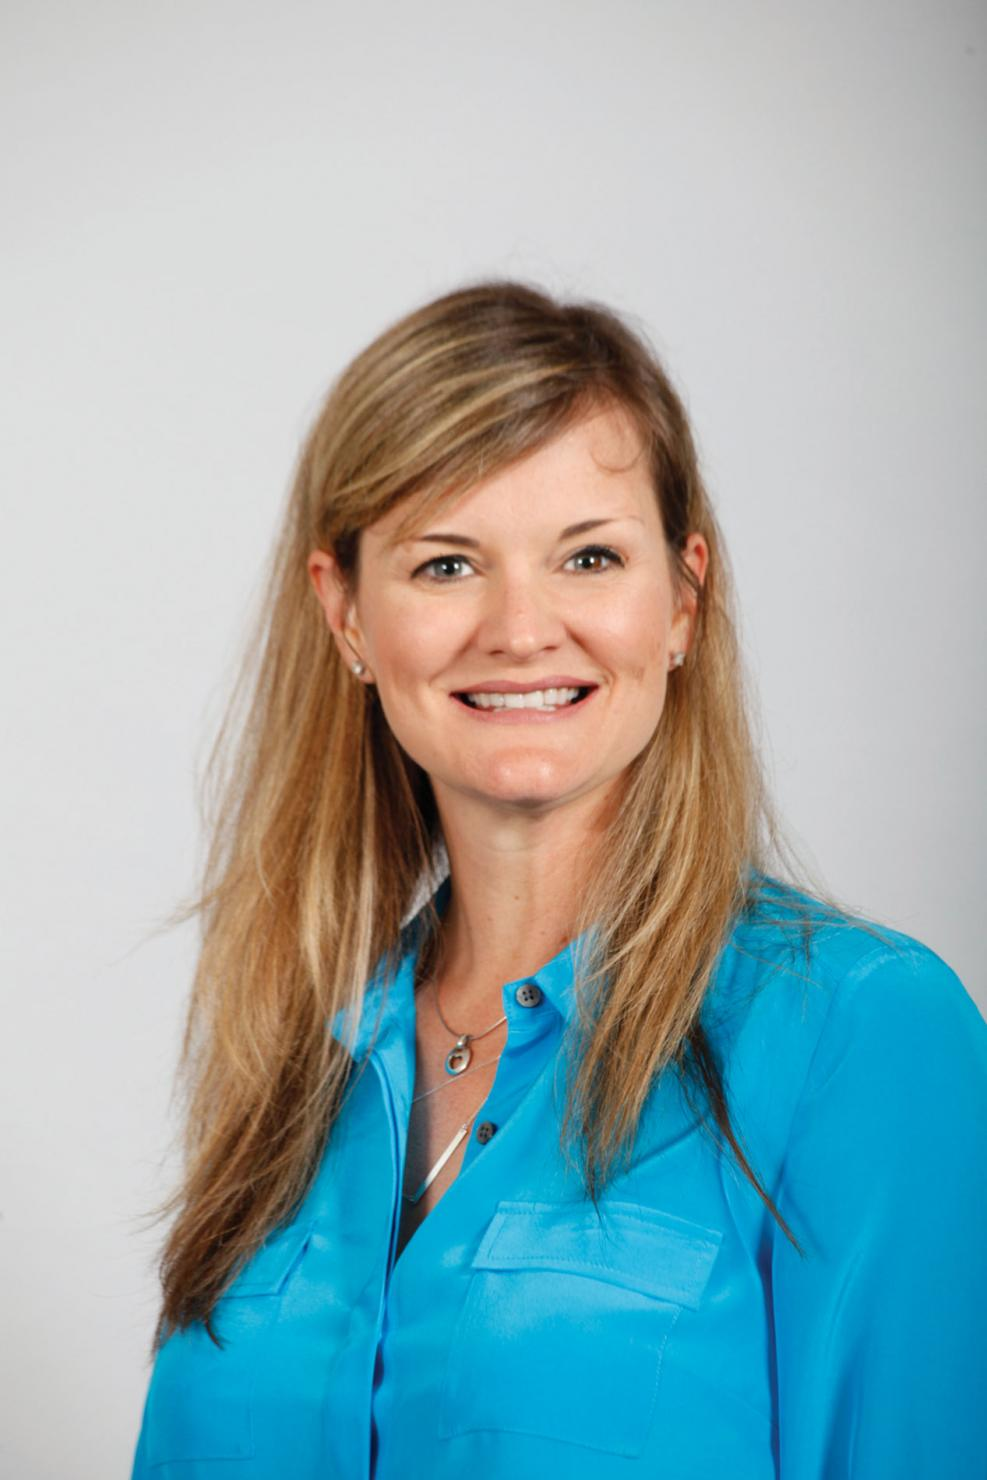 Kelly Stone, Owner of The Idea Box – Powered by Proforma